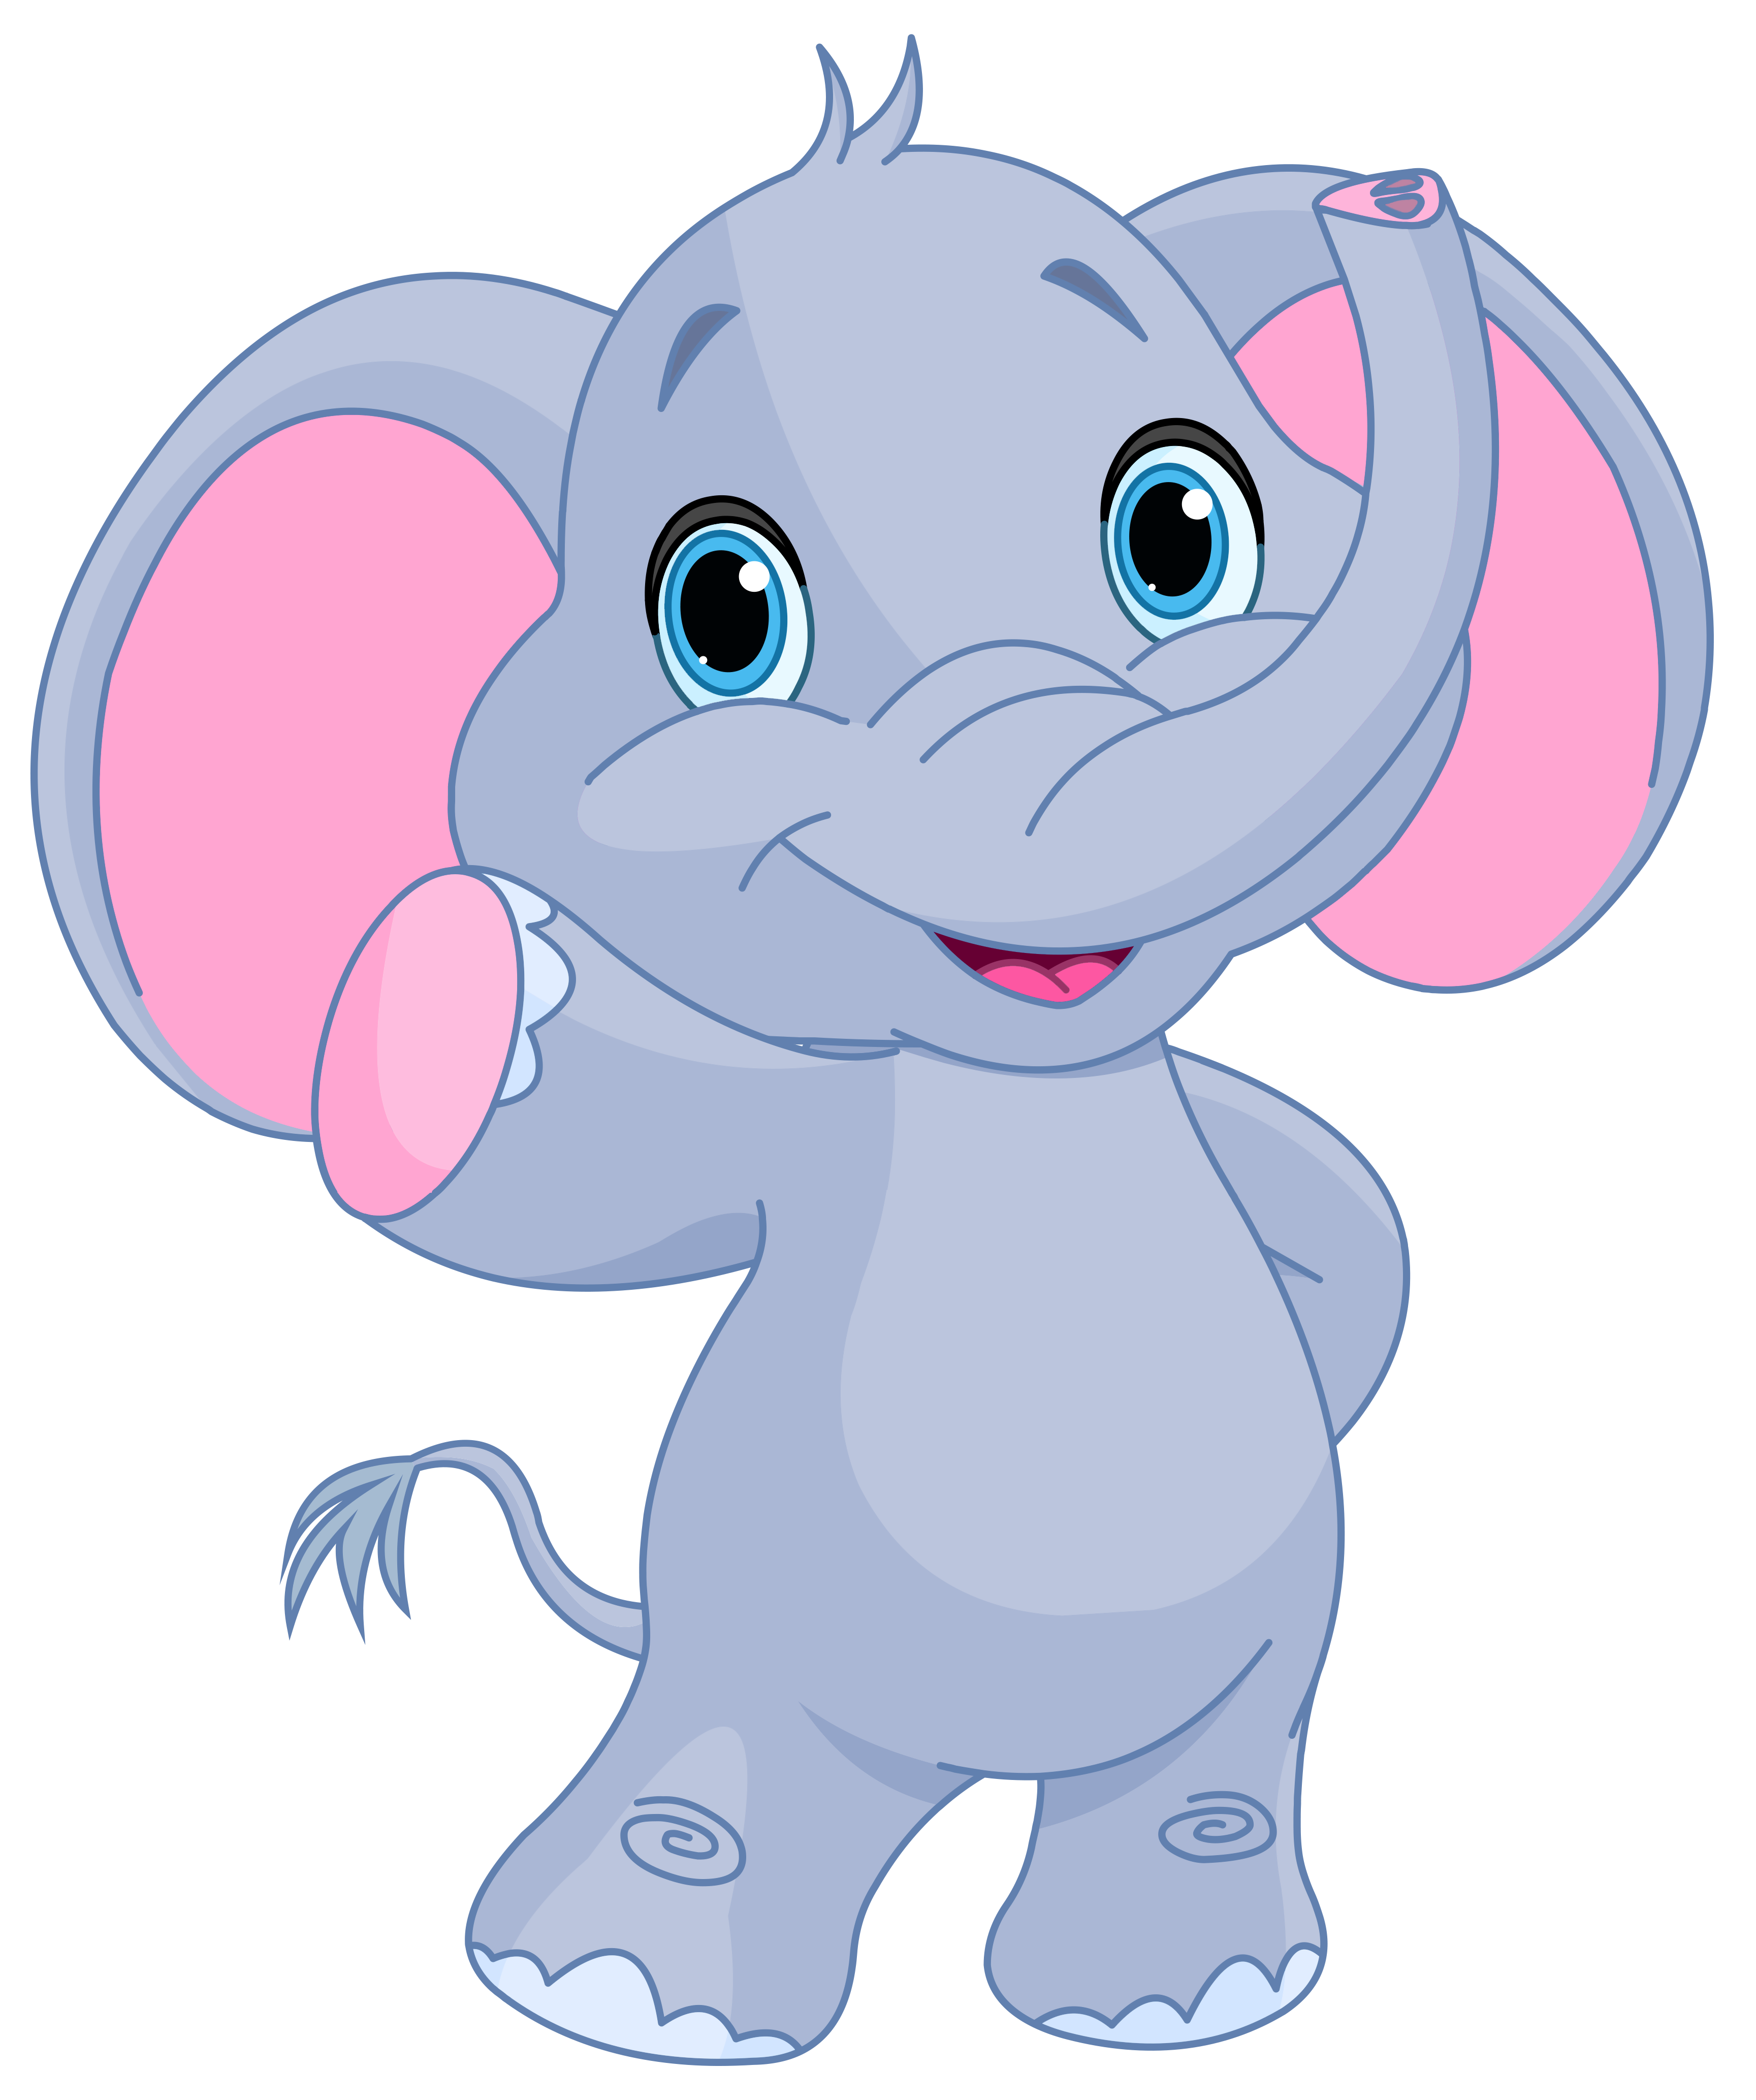 Elephant clipart #6, Download drawings